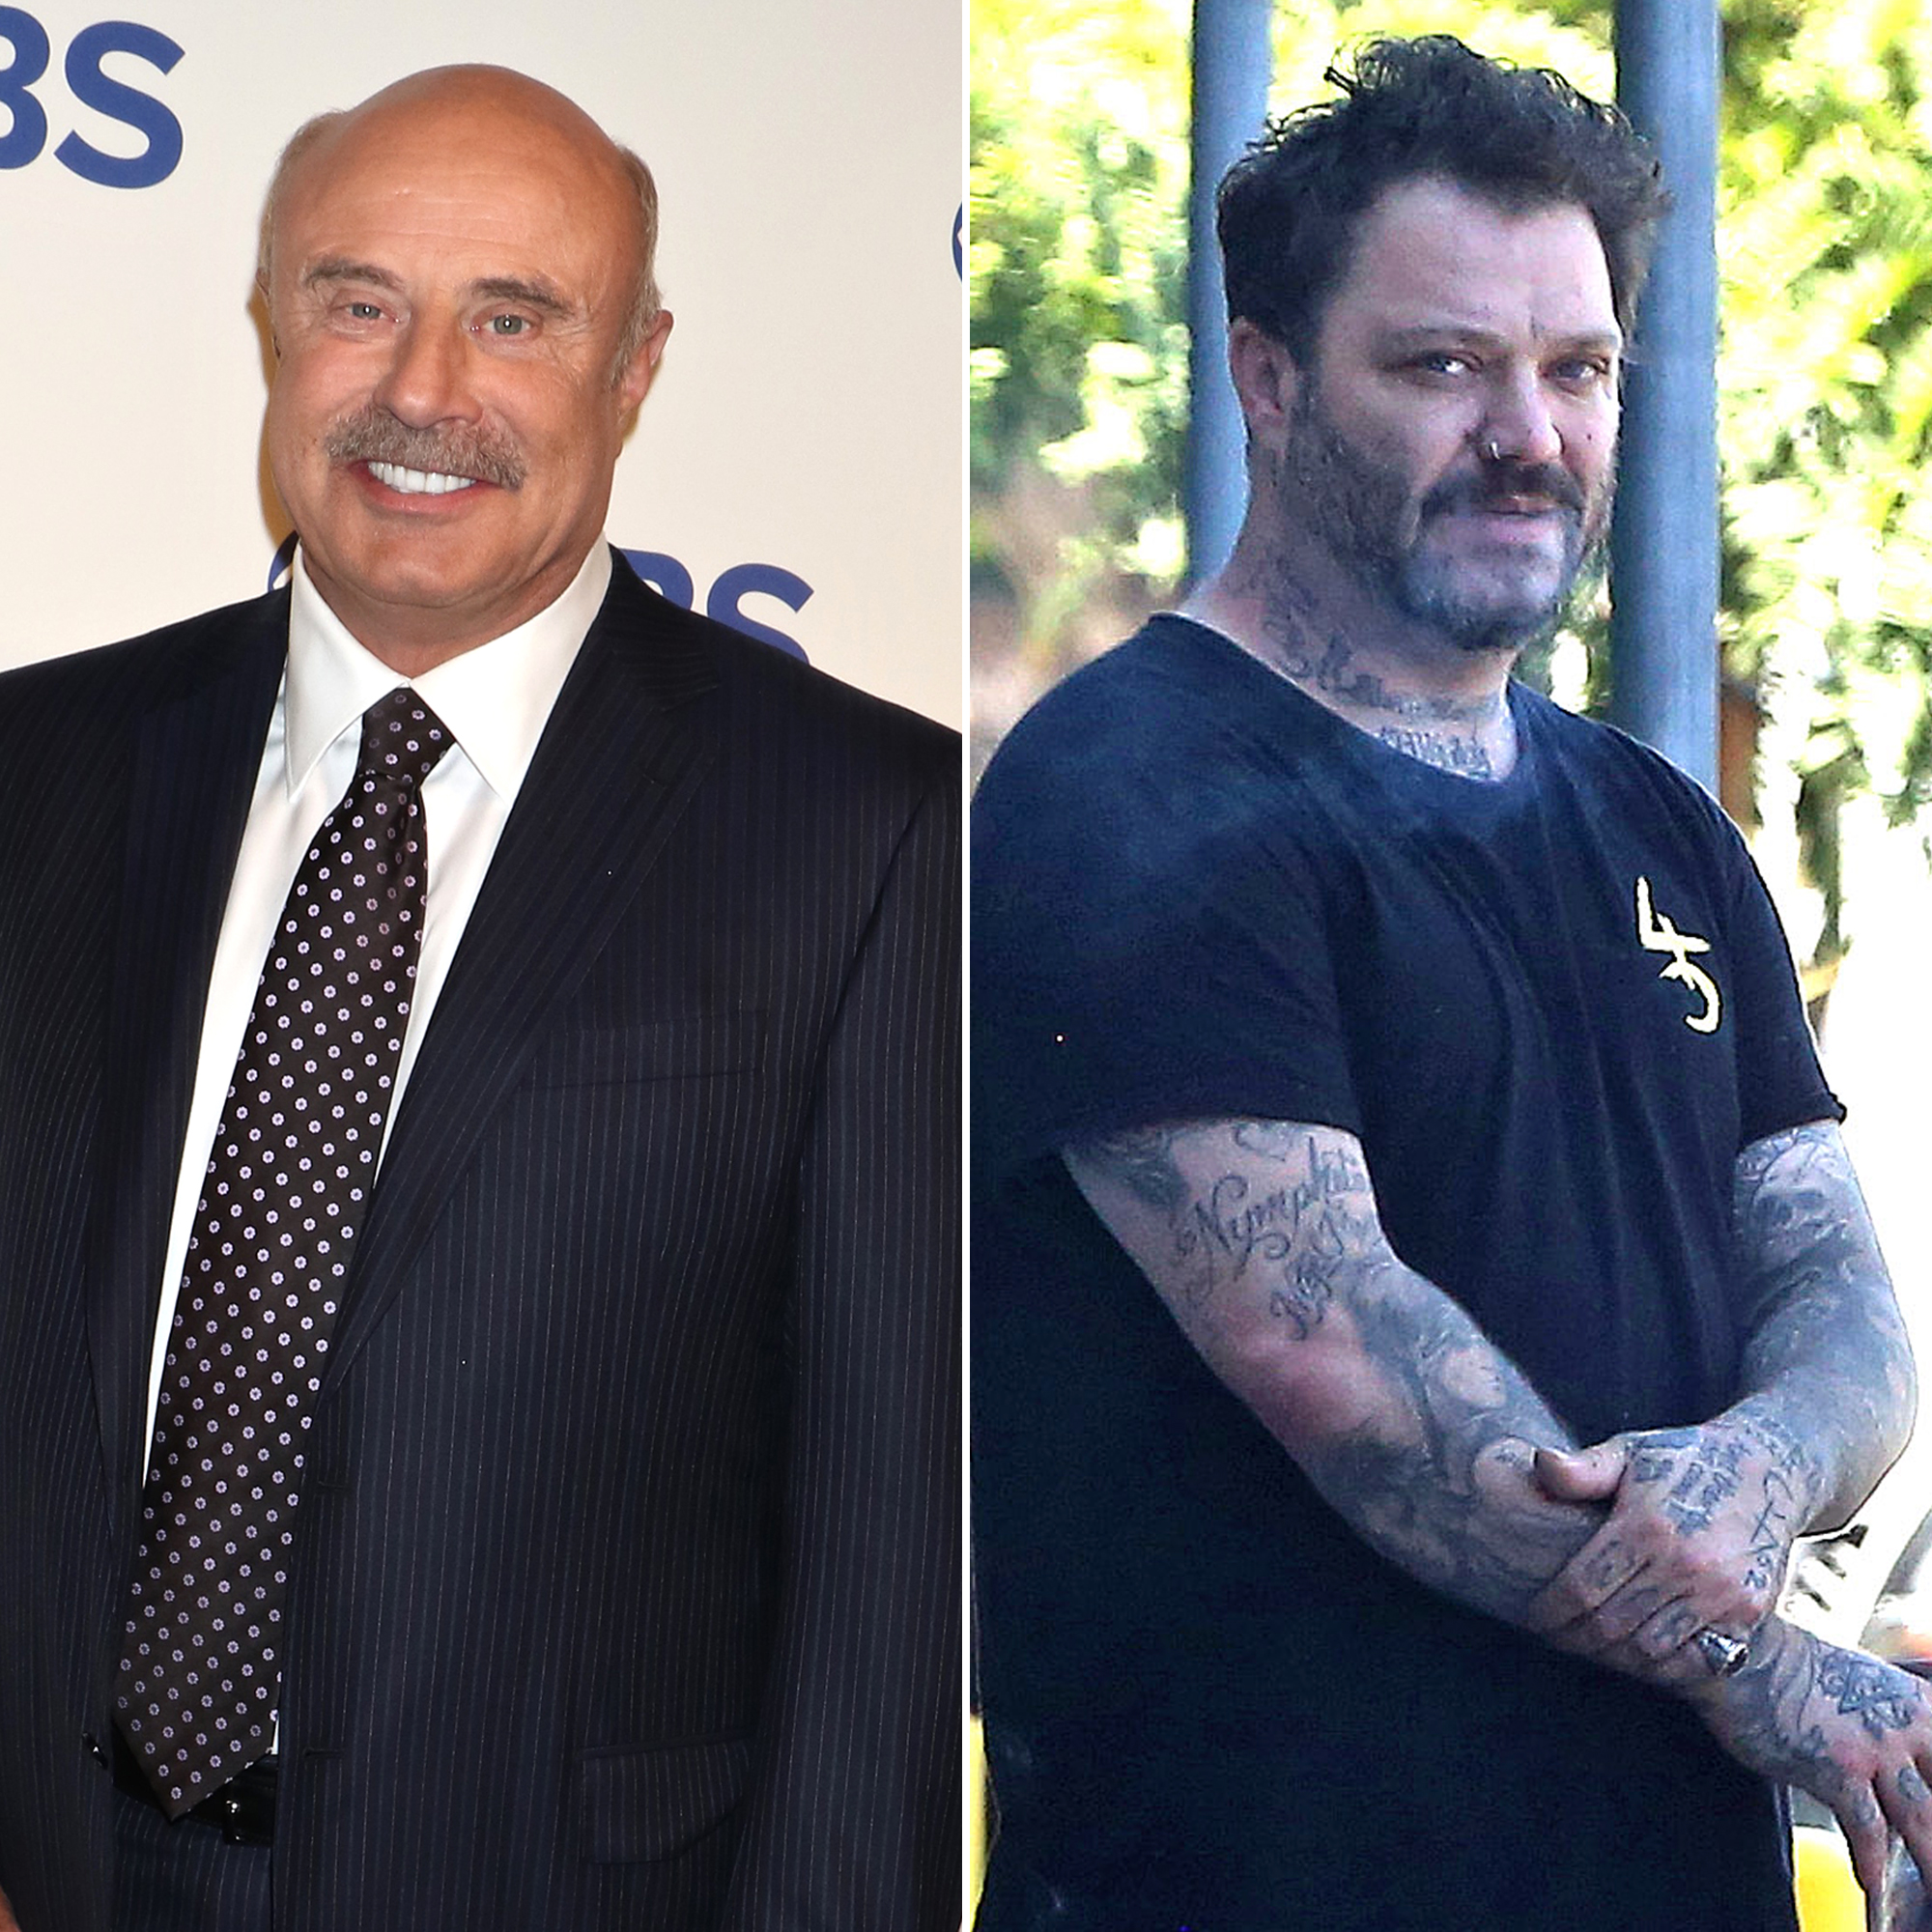 Dr. Phil Believes Bam Margera Is Making a 'Concerted, Sincere' Effort to Get Healthy in Rehab